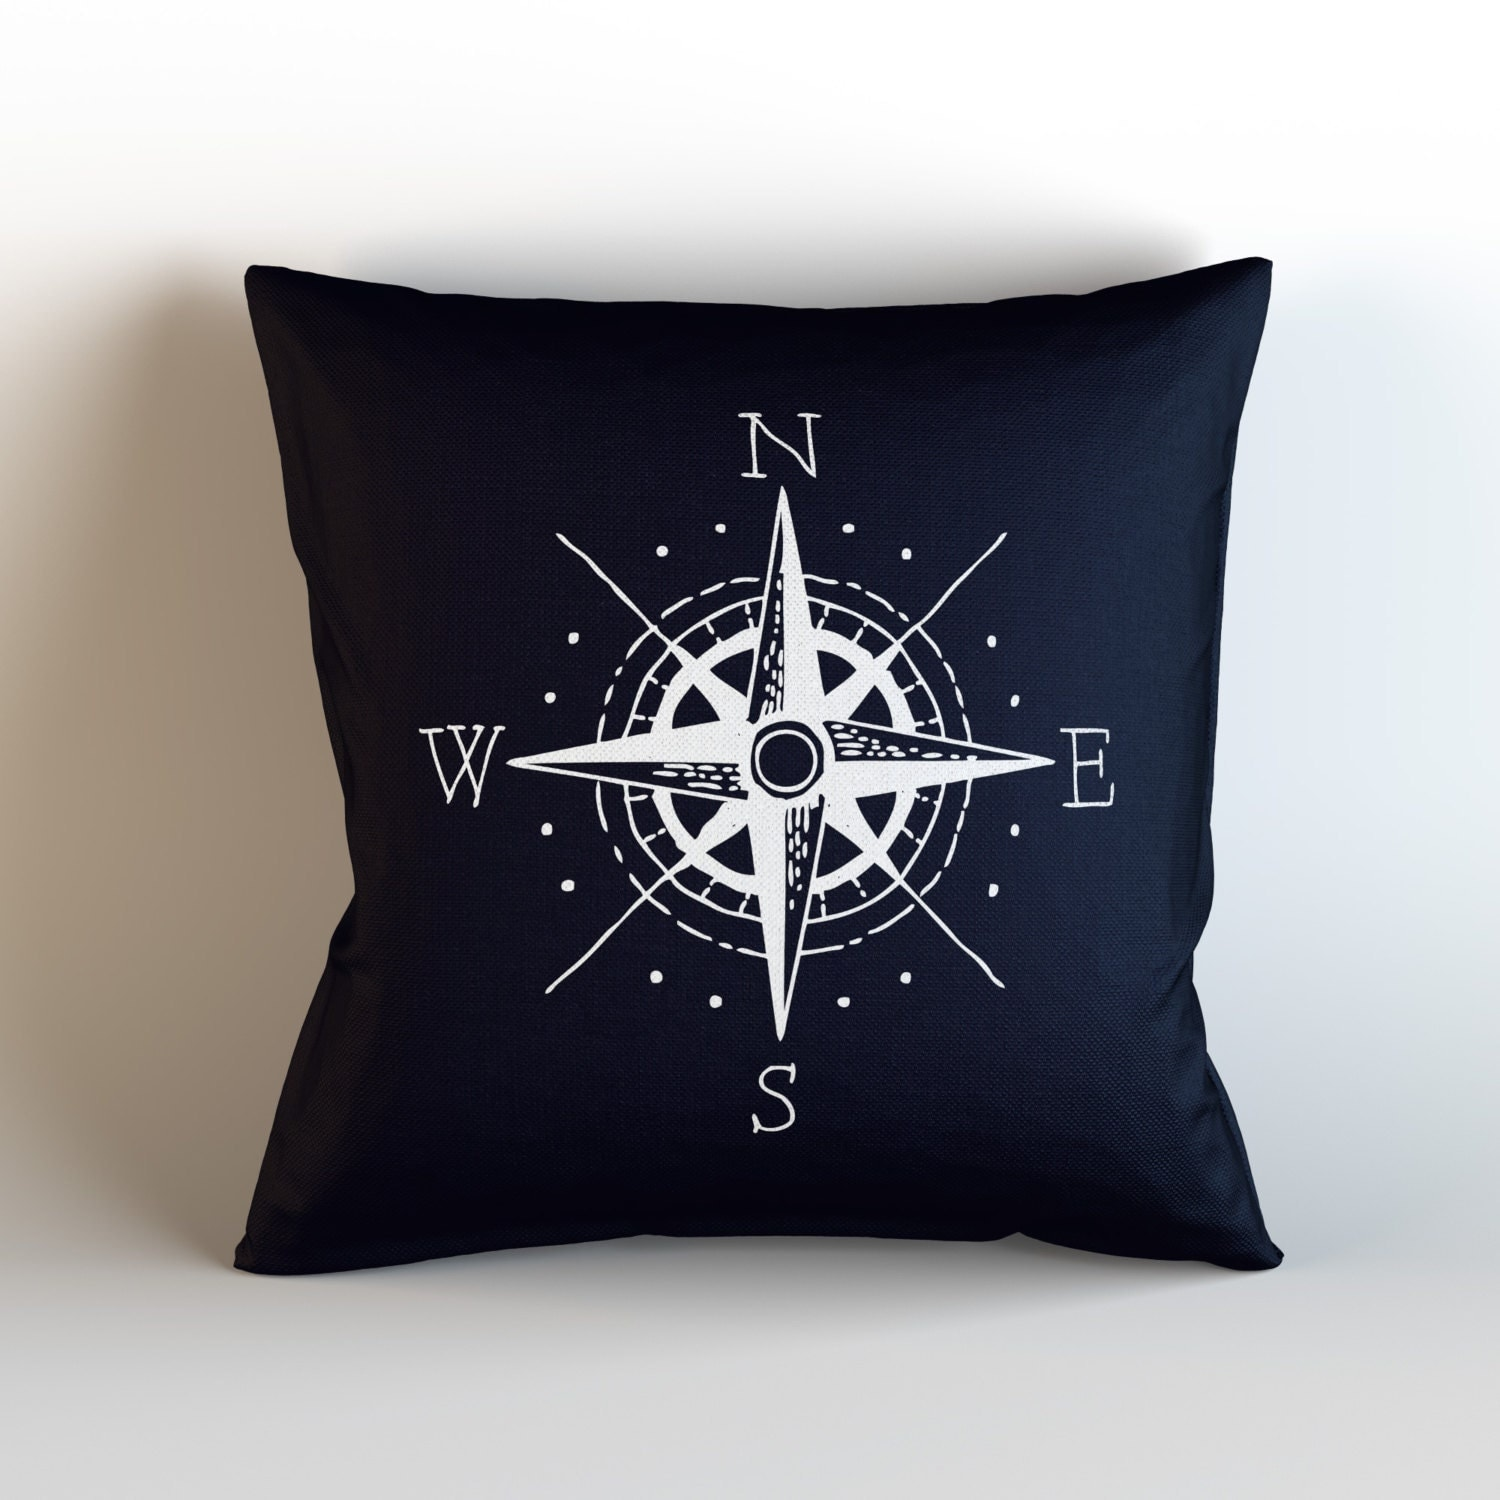 Throw Pillows Nordstrom : Nautical Compass / Decorative Throw Pillow with optional